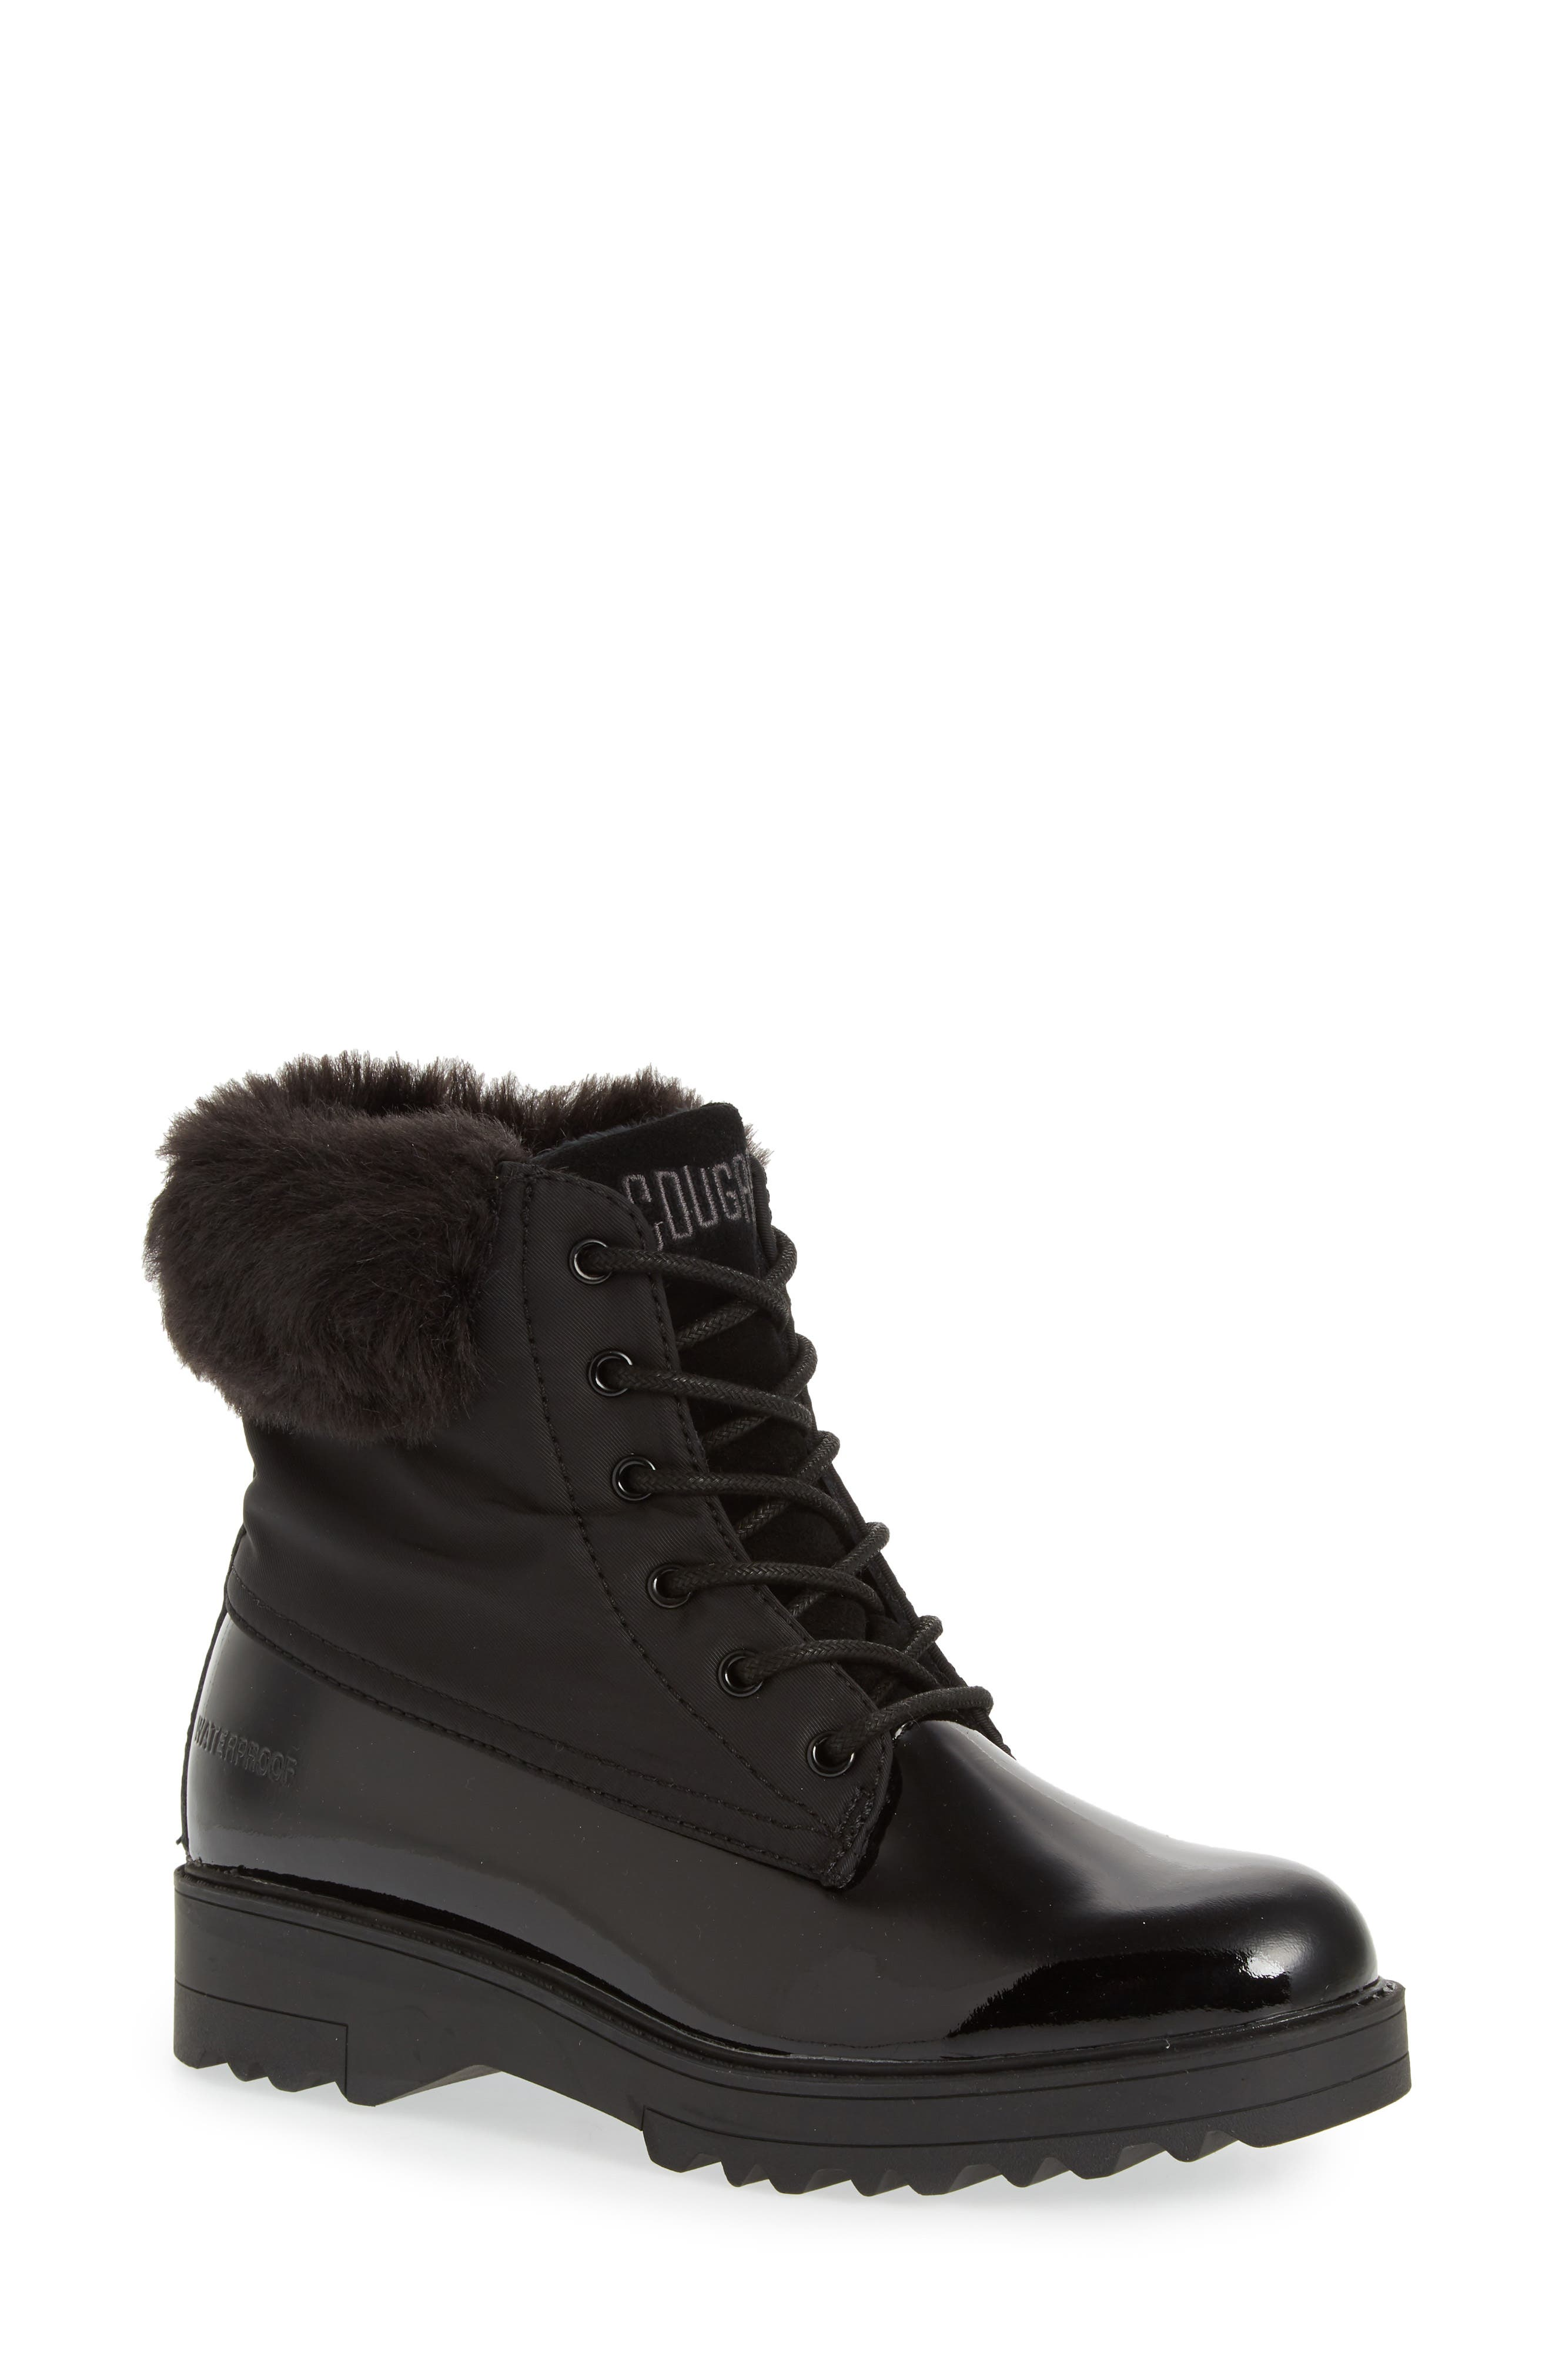 Gatineau Waterproof Insulated Boot with Faux Fur Collar,                             Main thumbnail 1, color,                             BLACK LEATHER